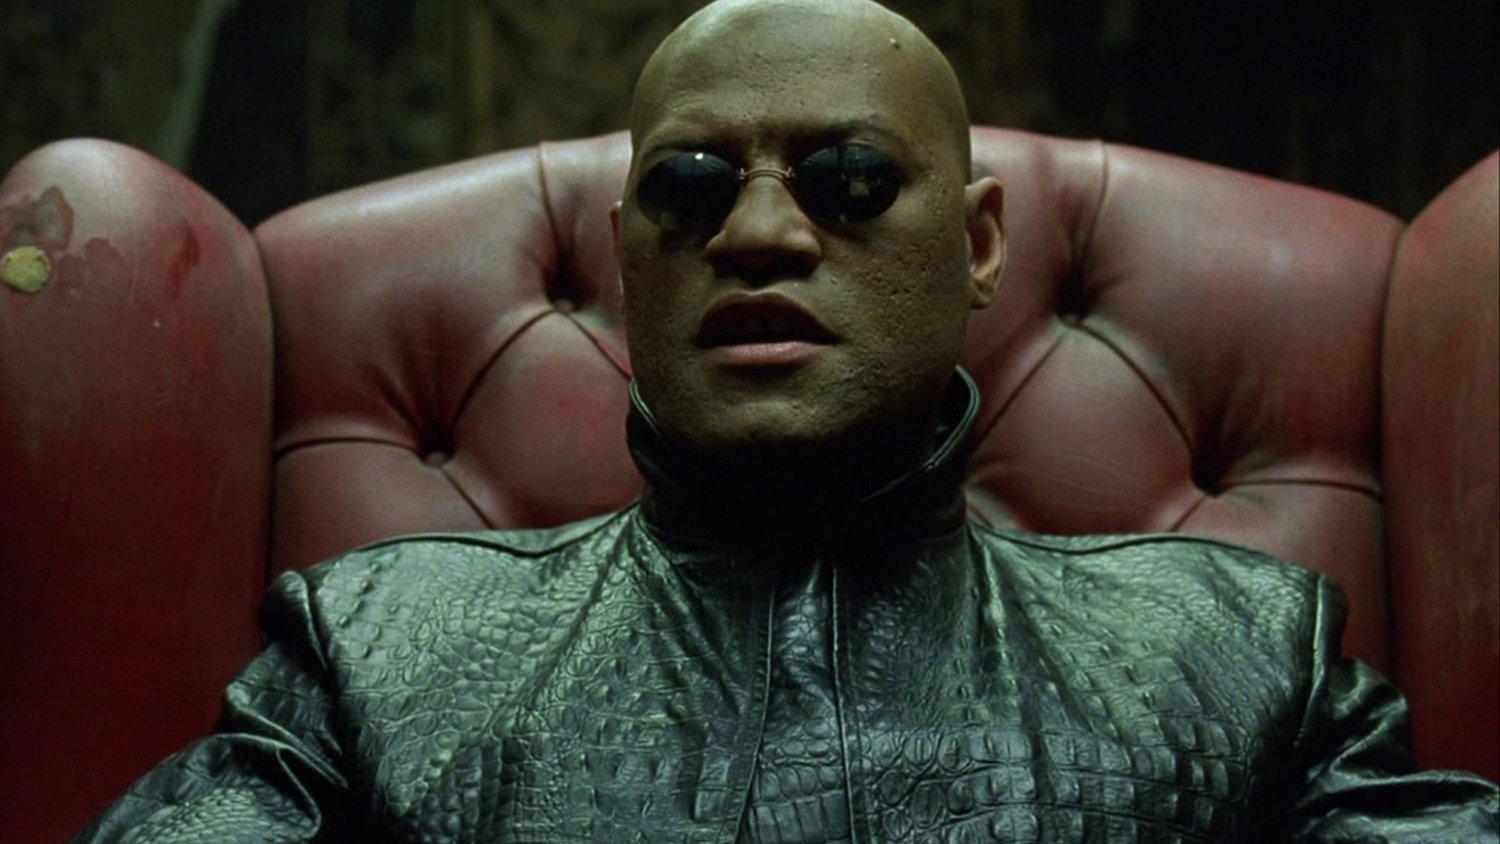 The New MATRIX Movie Is Rumored to Focus on a Young Morpheus